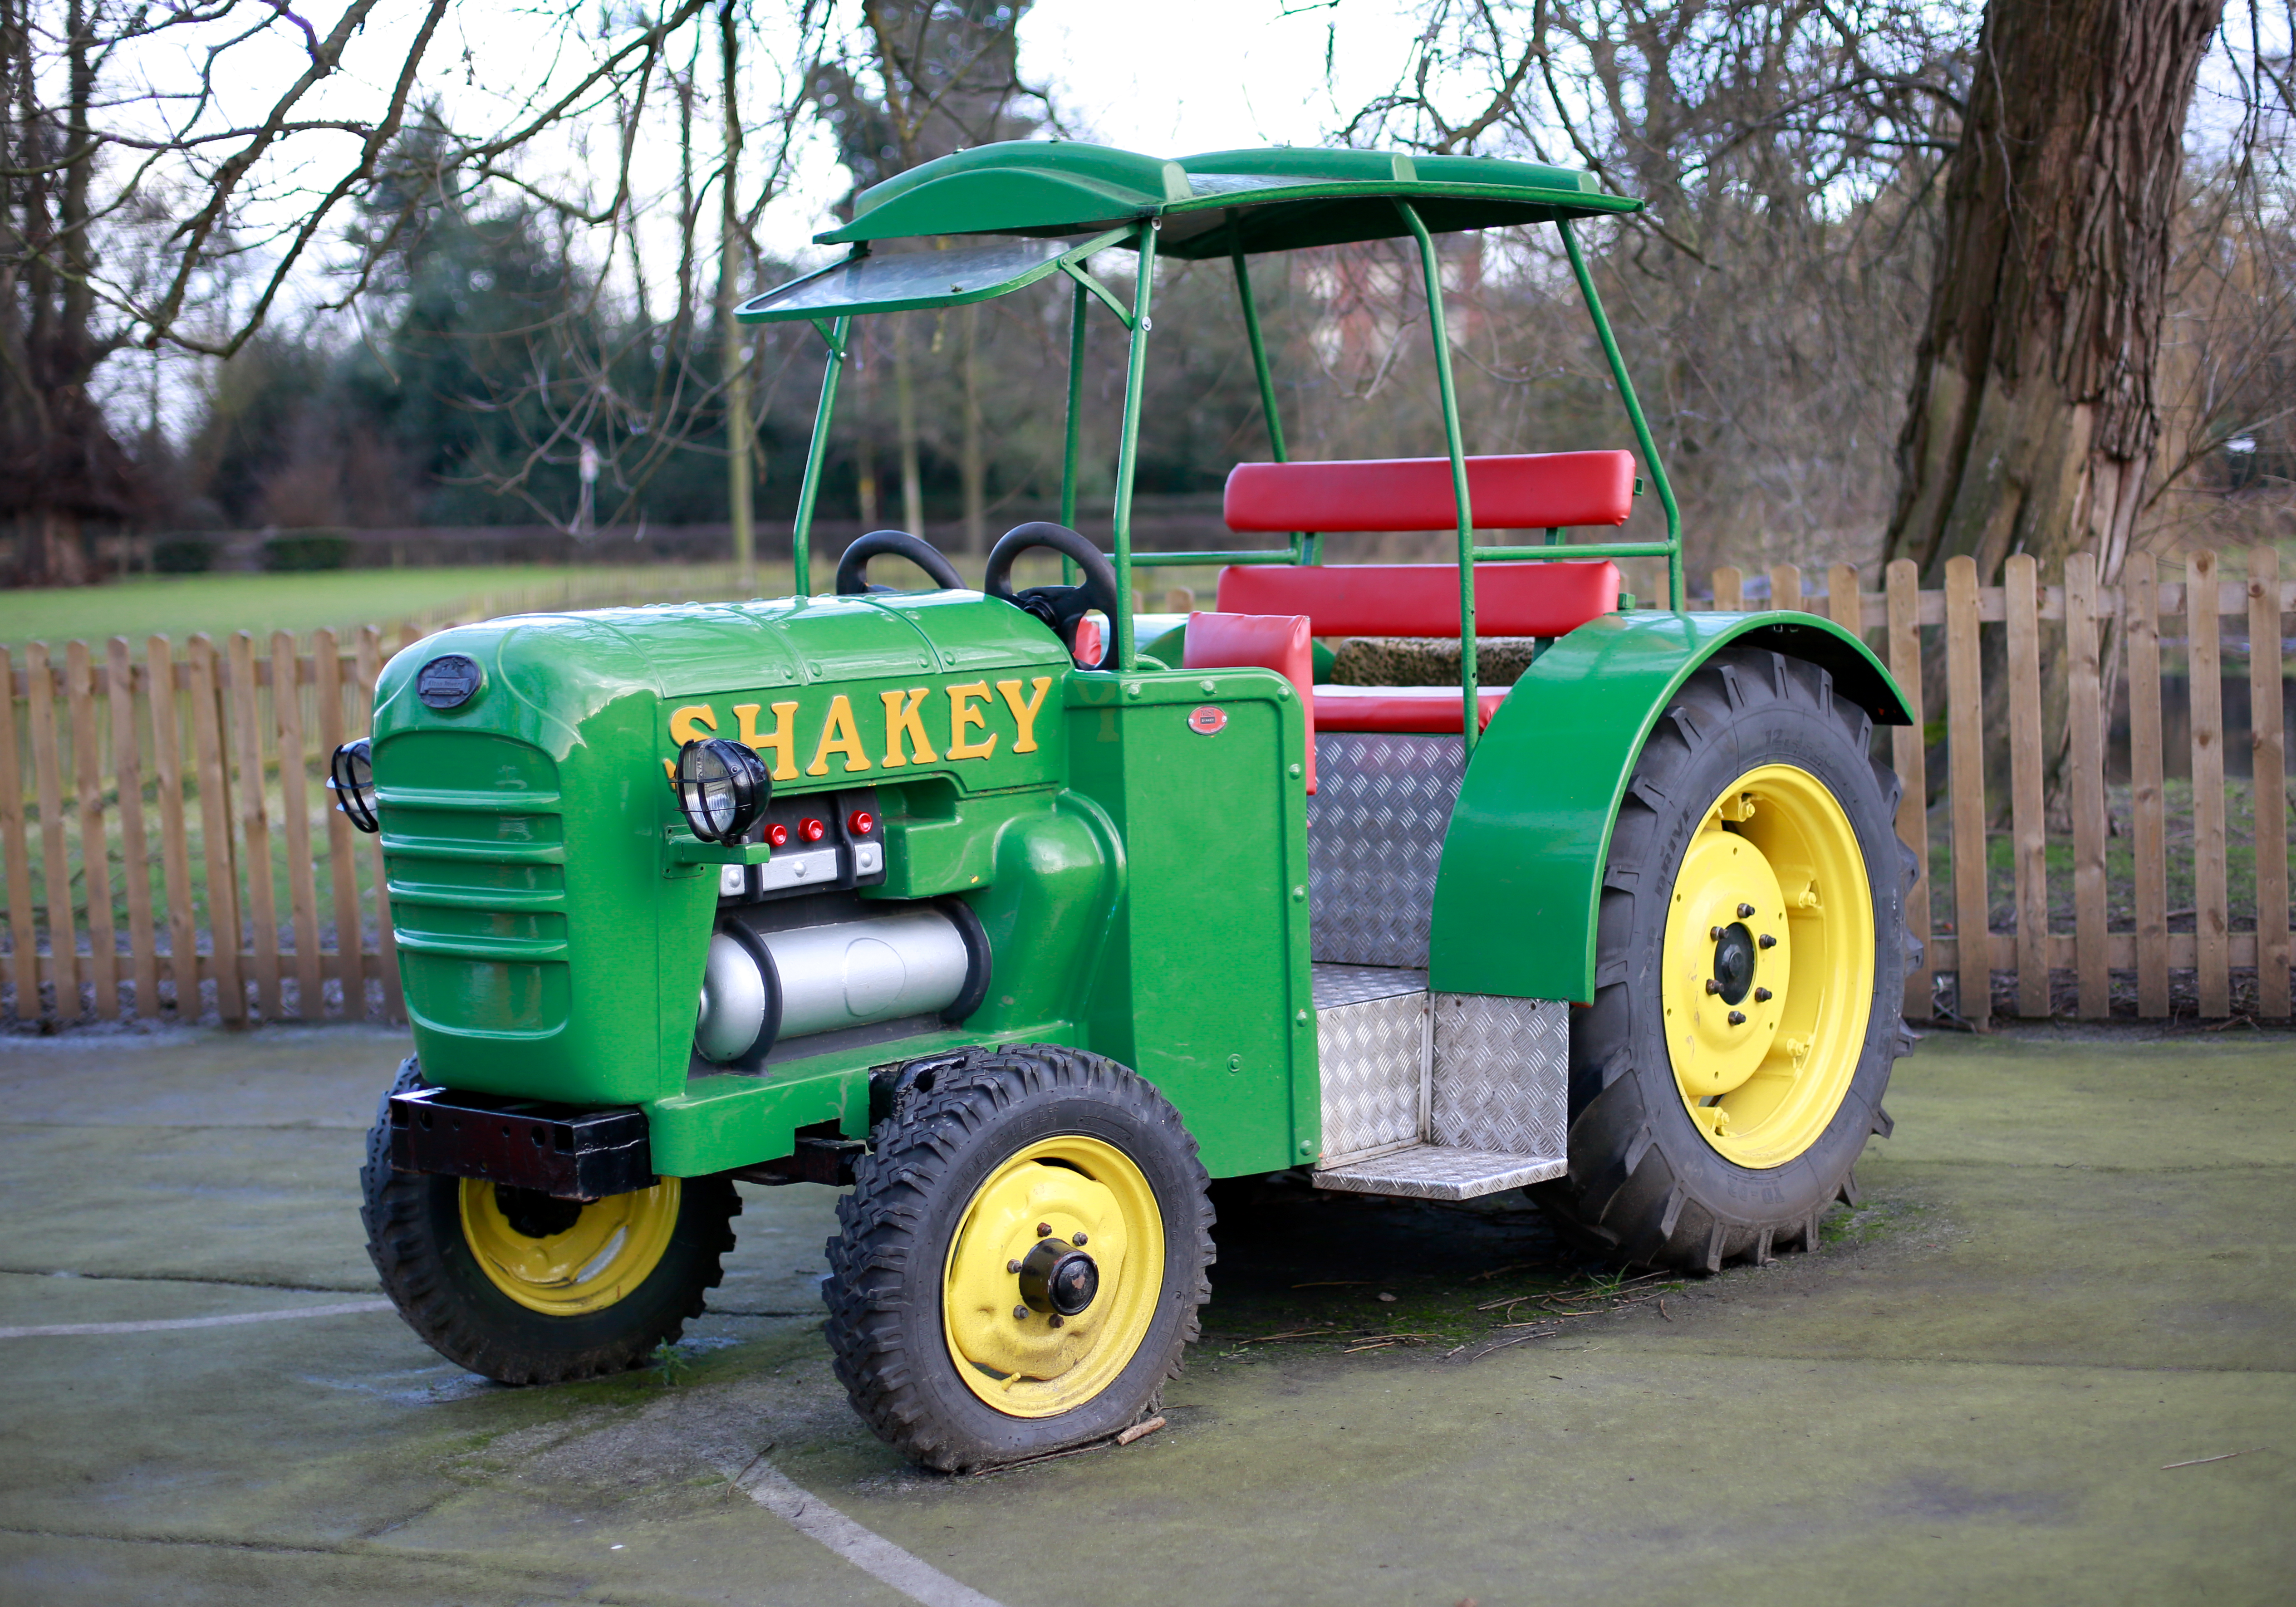 Shakey the tractor